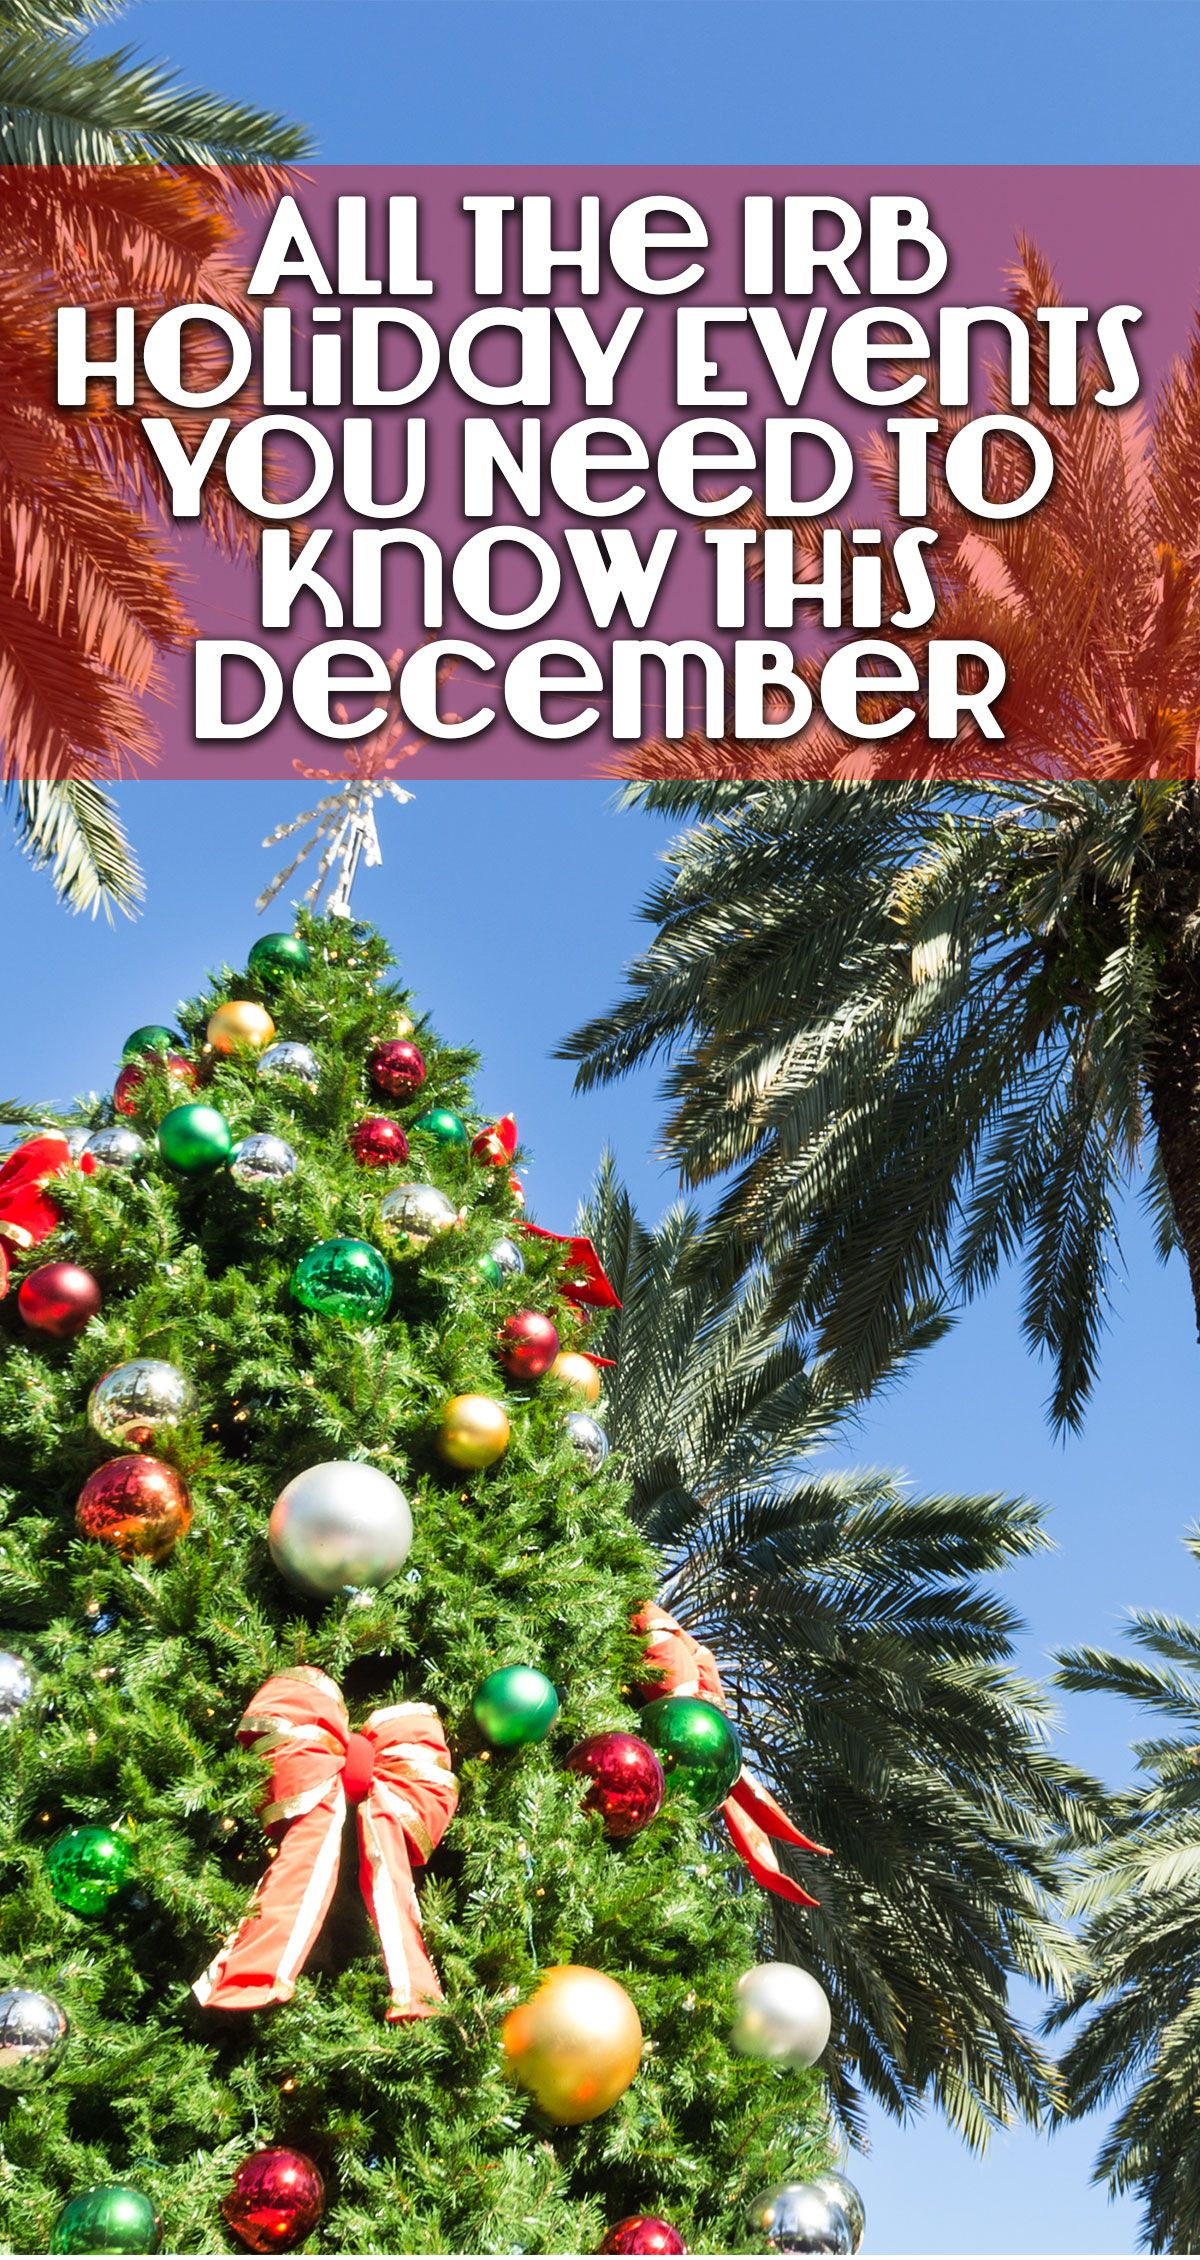 Enjoy The Best Of Both Worlds During Your Gulfcoast Of Florida Beachvacation With A Coastal Christmas Celebrati Christmas Travel Holidays And Events Holiday